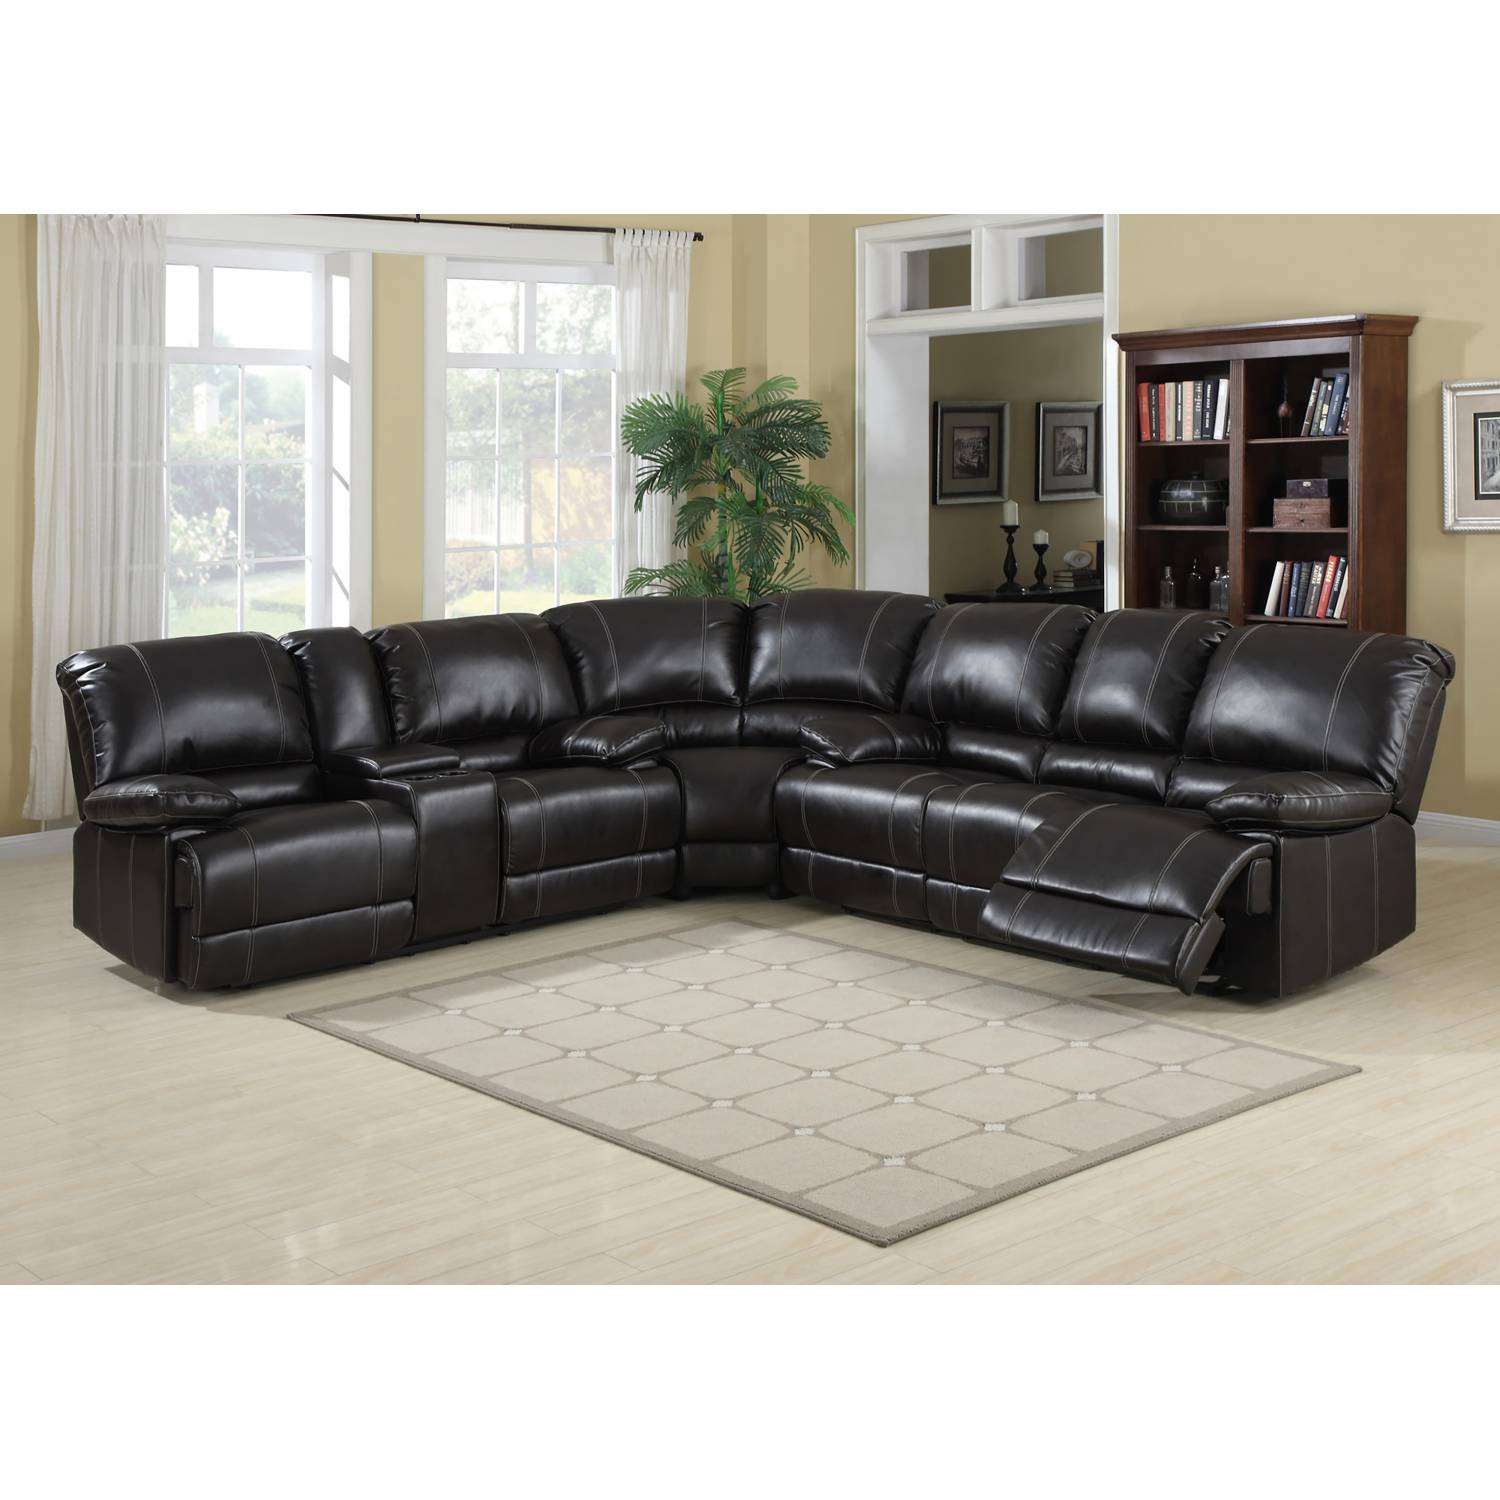 KEVIN COCOA FAUX LEATHER RECLINING SECTIONAL SOFA SET